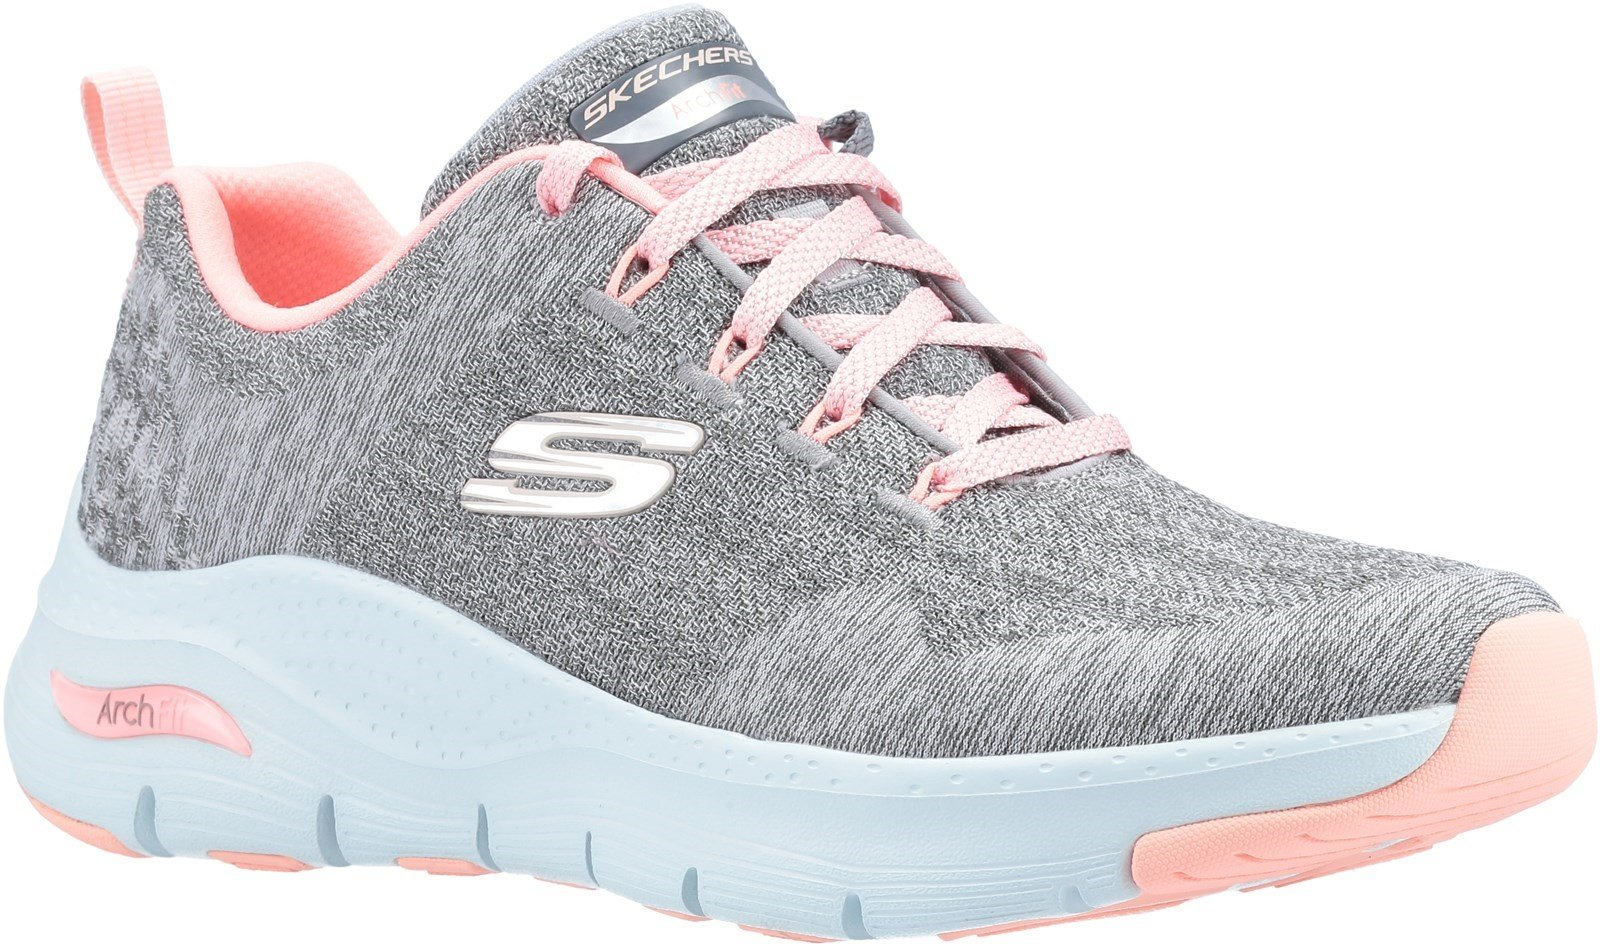 Skechers Women's Arch Fit Comfy Wave Trainer Various Colours 31042 - Grey/Pink 3